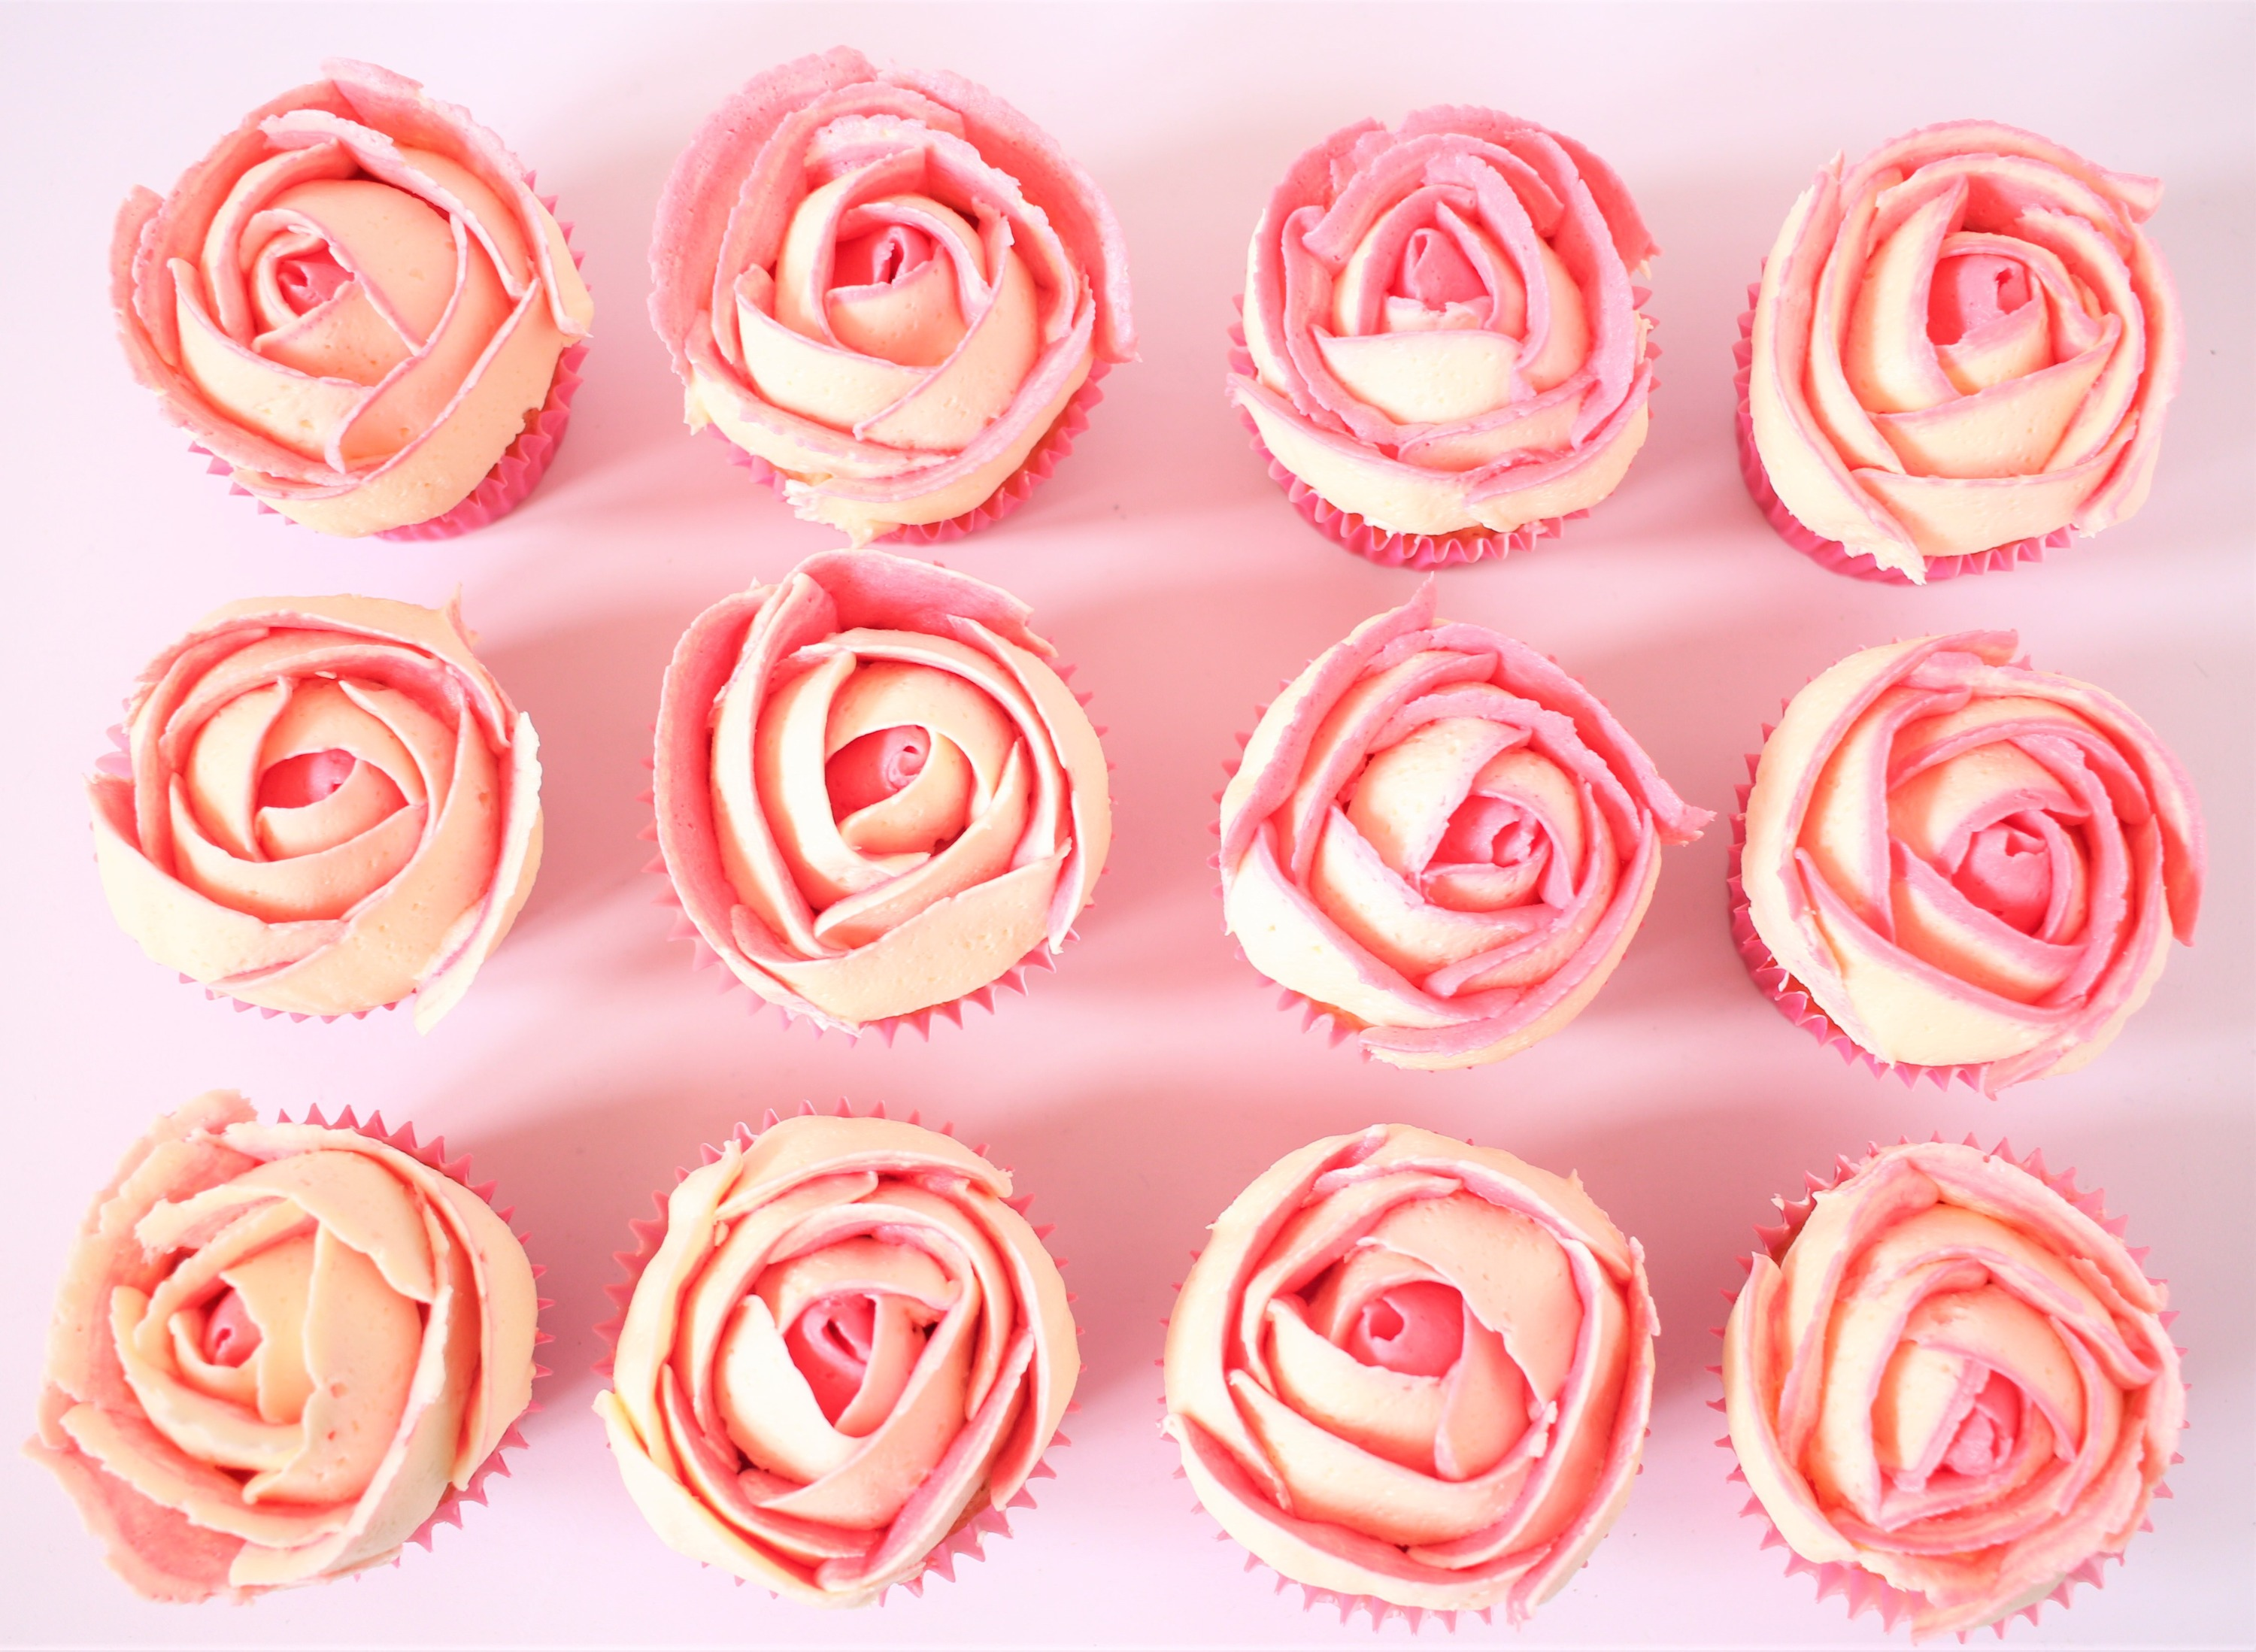 3D ombre rose cupcakes